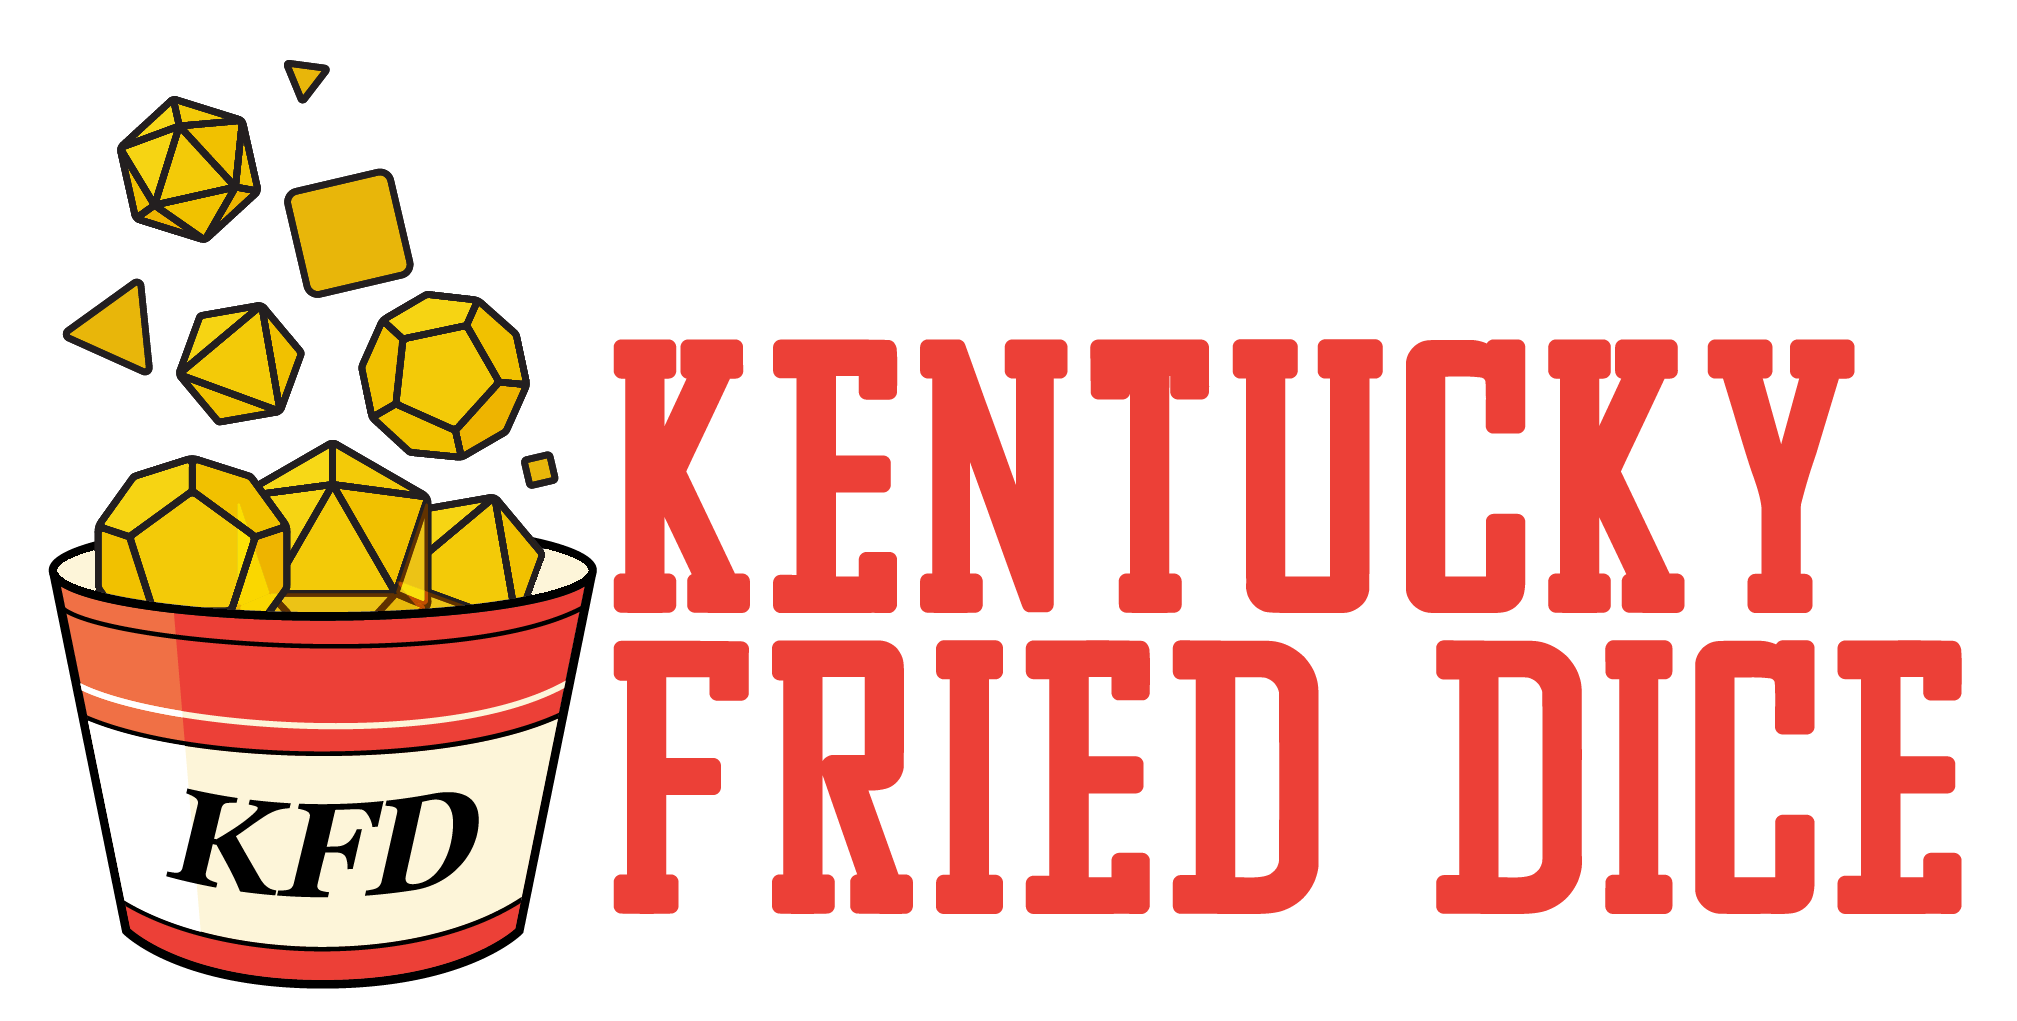 Kentucky Fried Dice